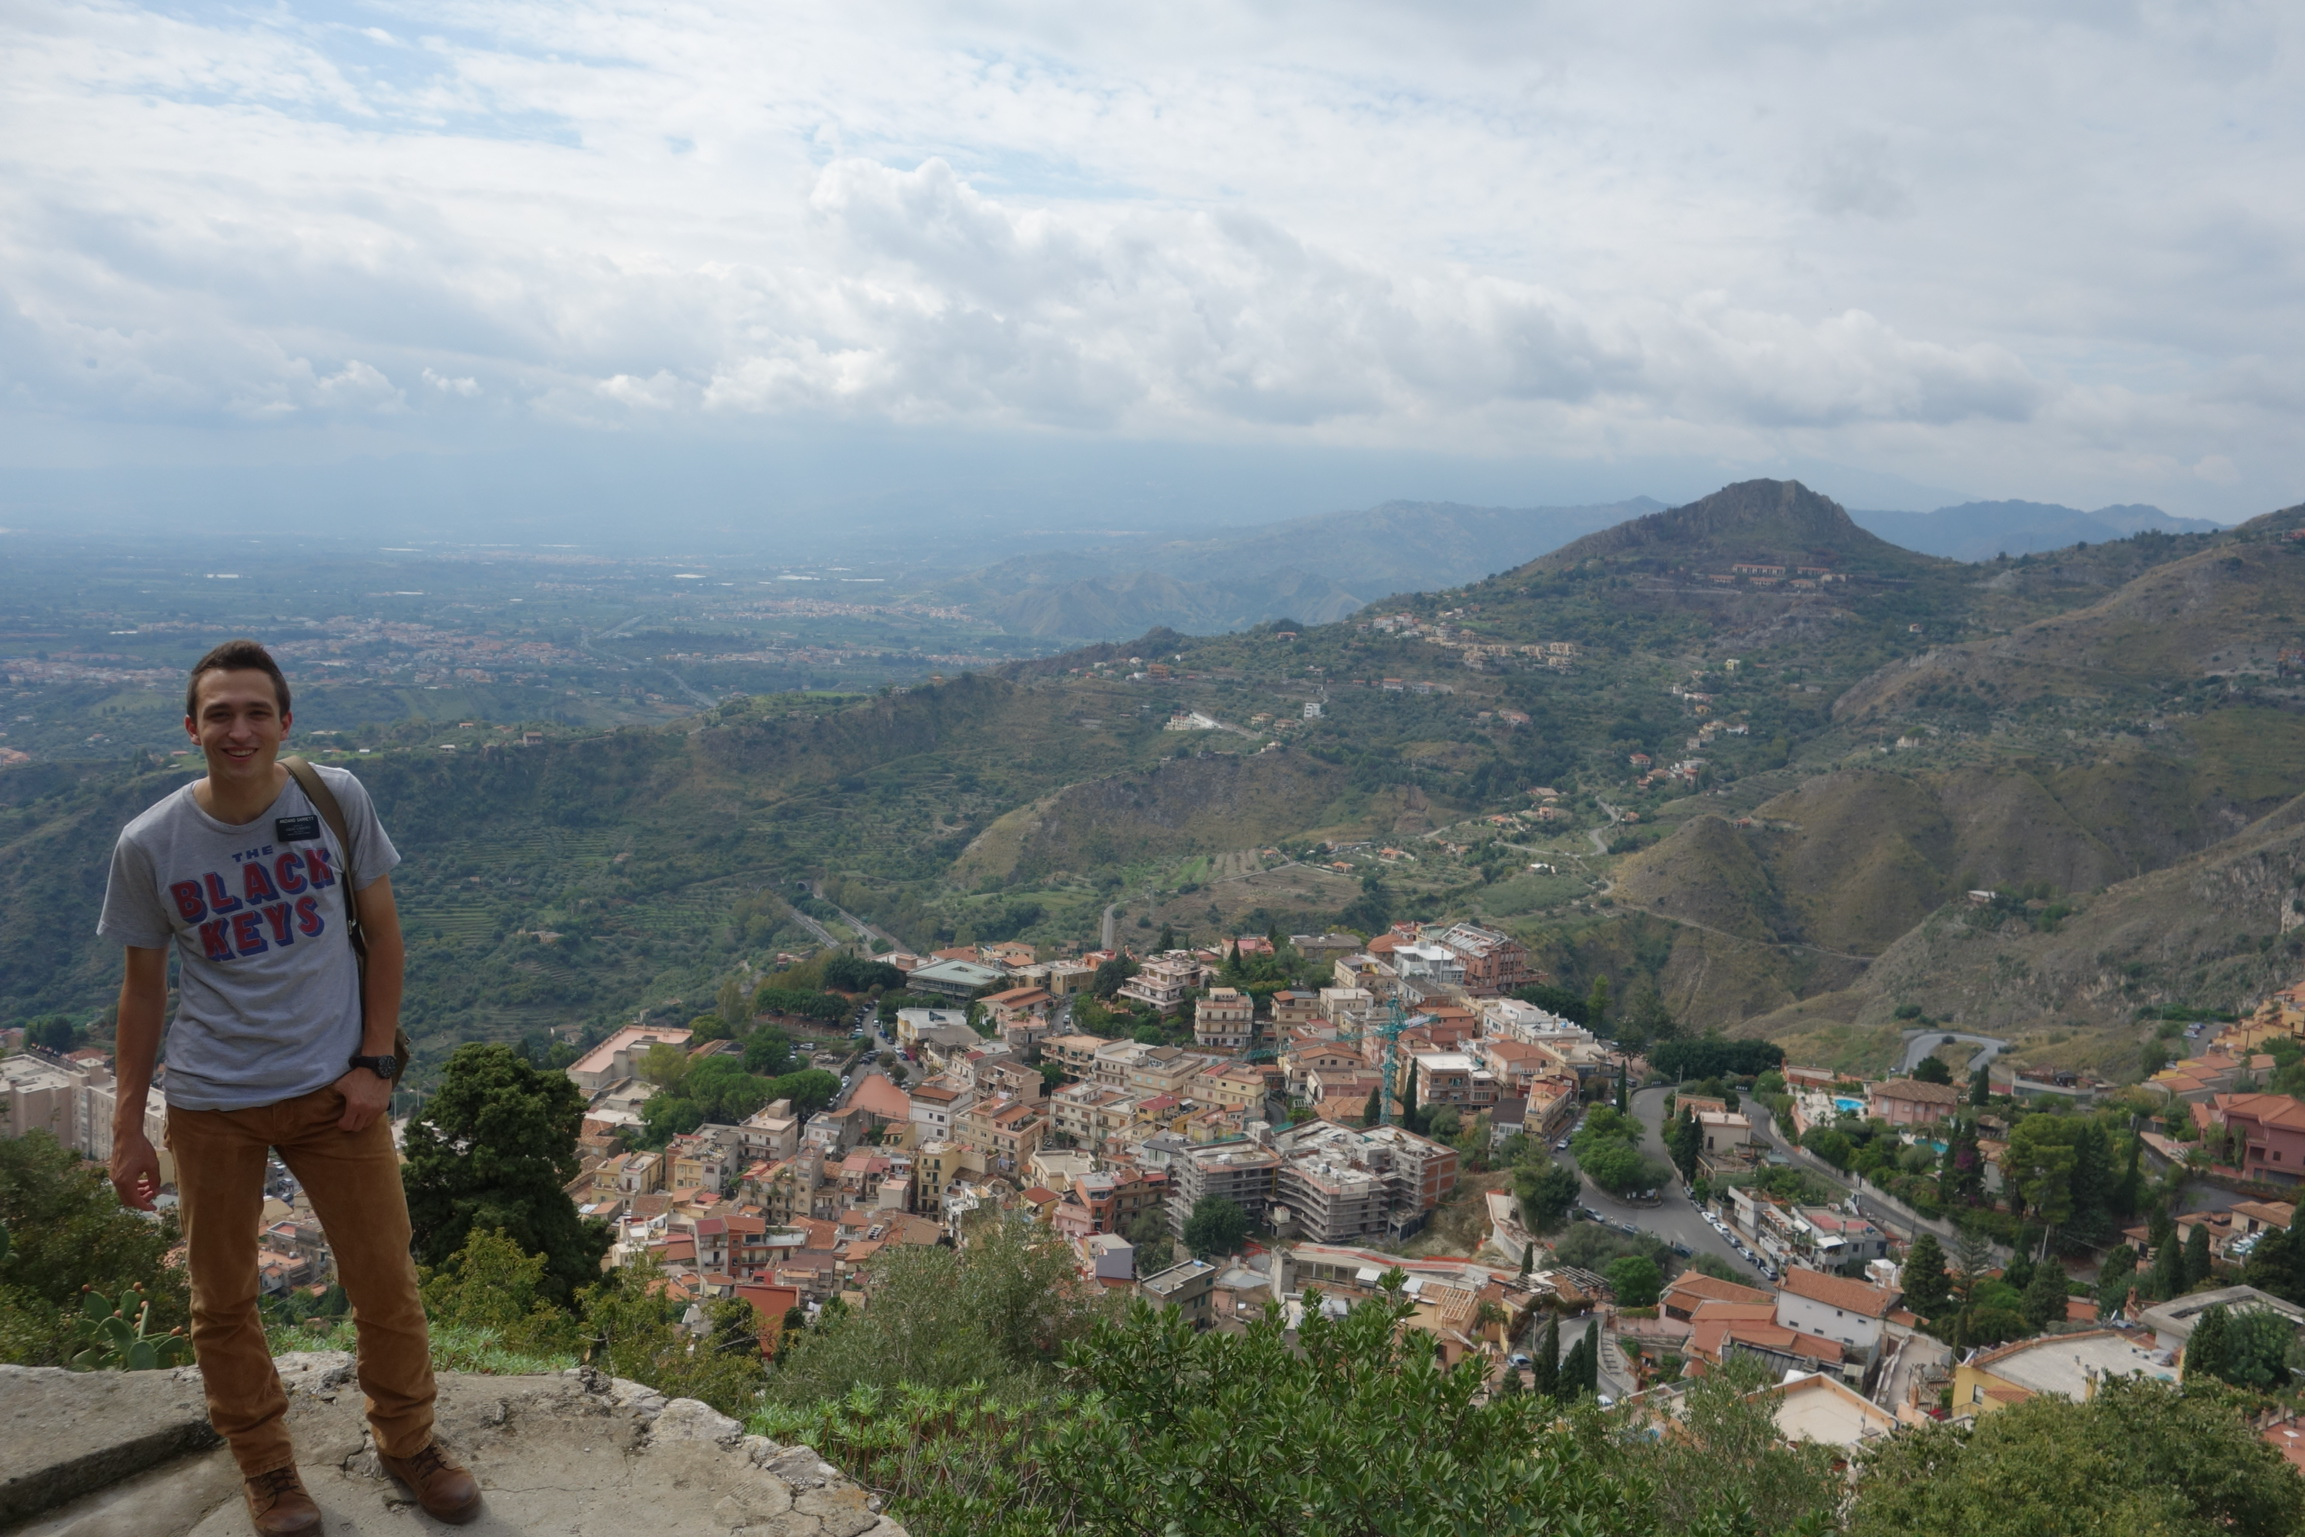 Second Taormina excursion